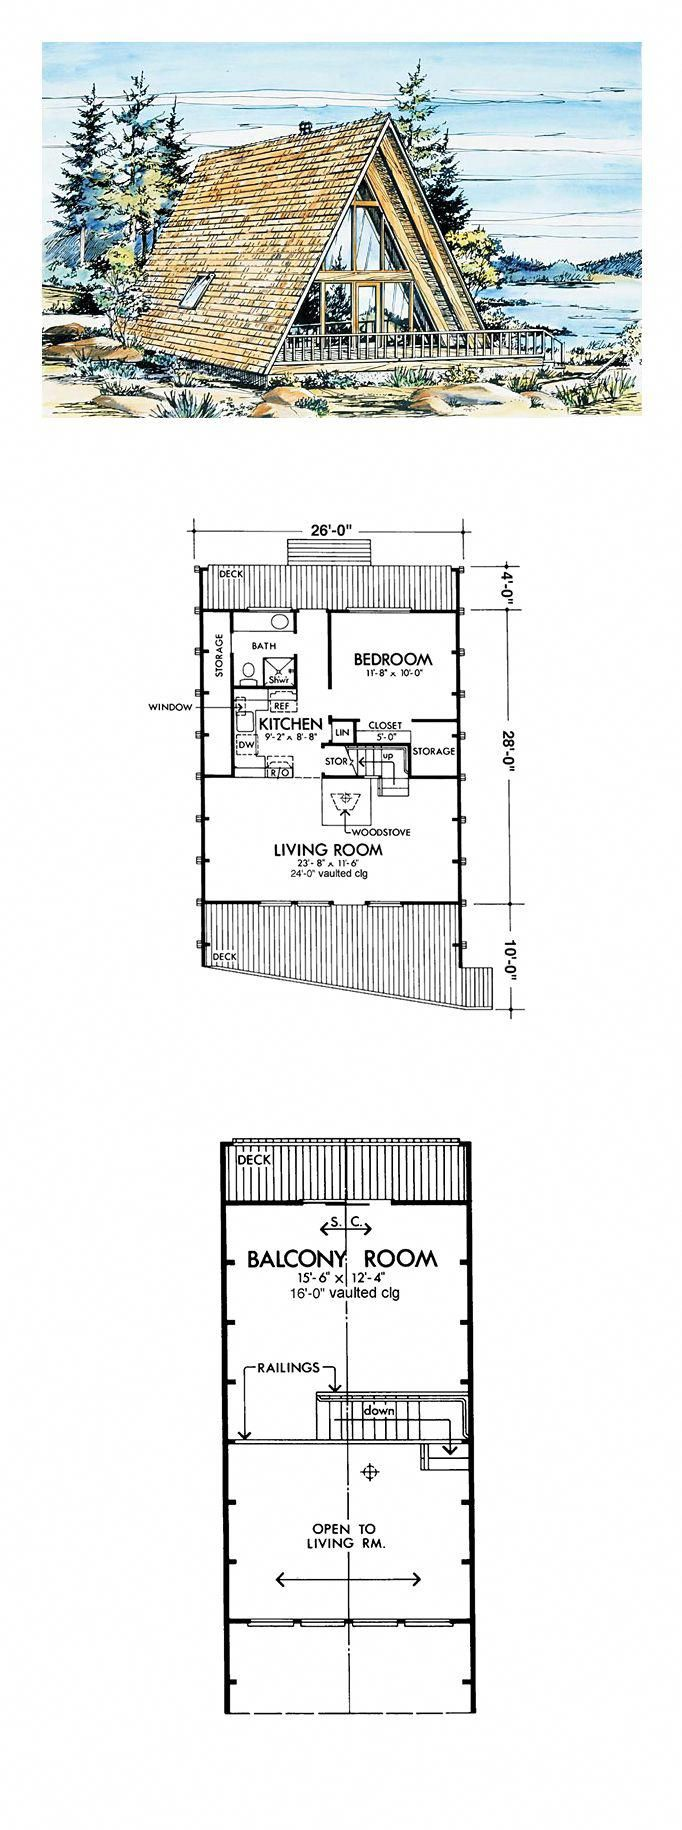 A Frame Style Cool House Plan Id Chp 40551 Total Living Area 908 Sq Ft 1 Bedroom 1 Bathroom Ho A Frame Cabin Plans A Frame House A Frame House Plans